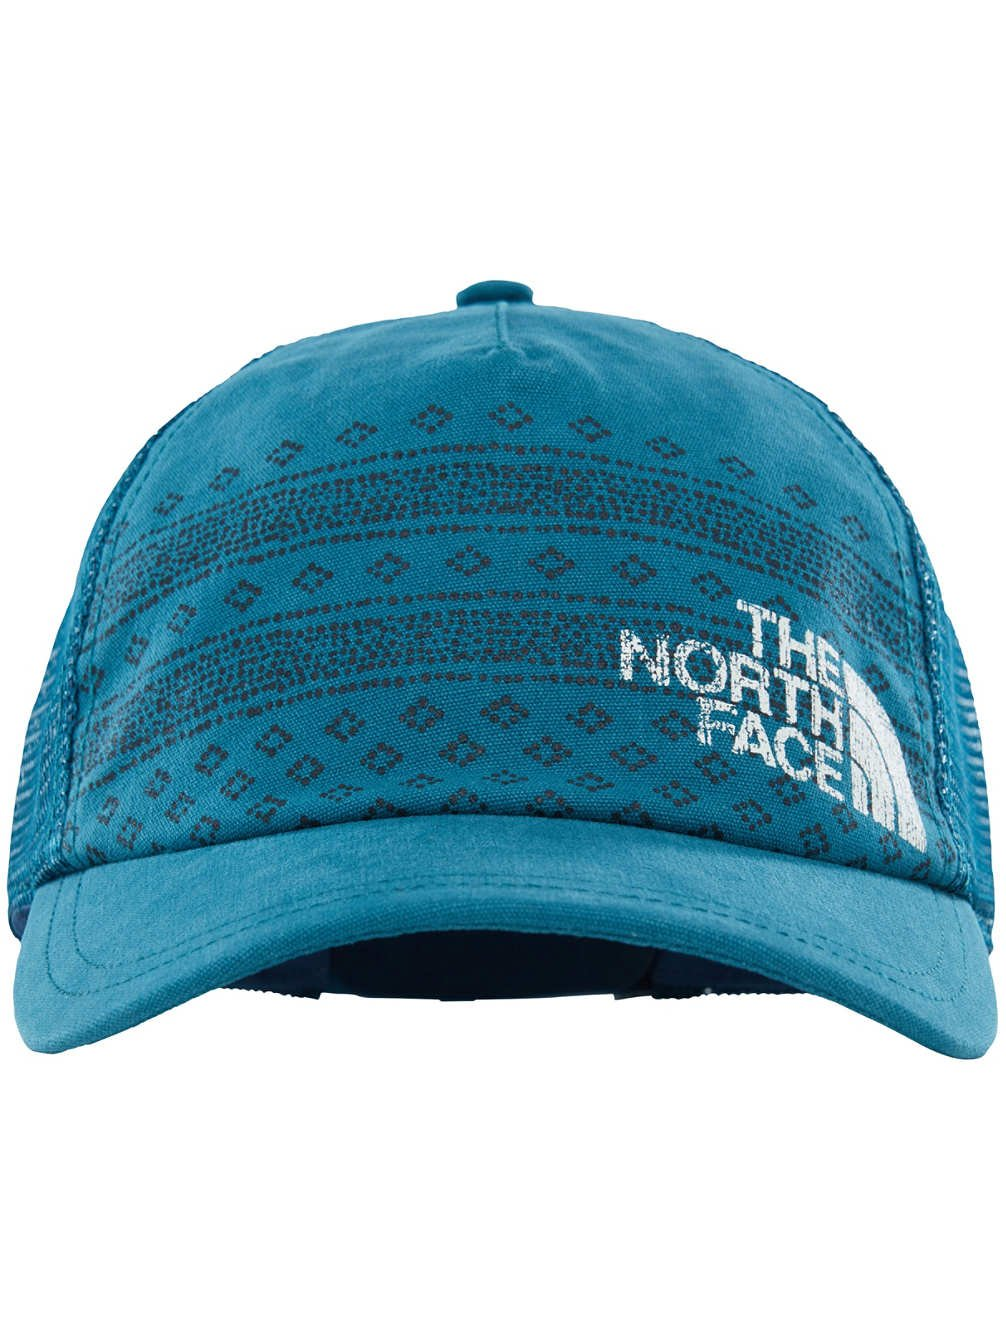 The North Face Low Pro Trucker Ball Gorra, Mujer, Azul (Urban Navy Print), Talla Única: Amazon.es: Deportes y aire libre